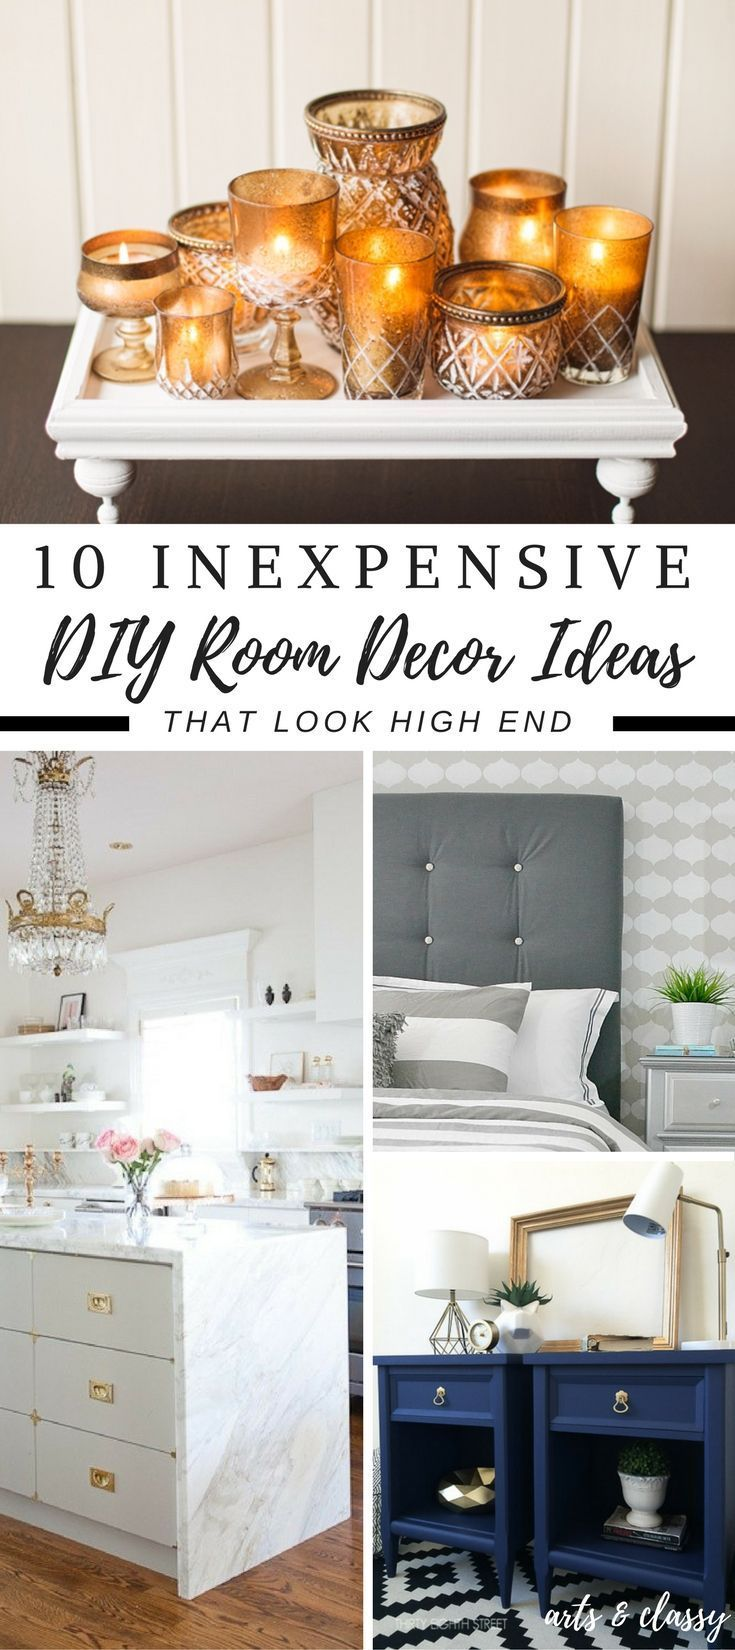 10 Inexpensive DIY Room Decor Ideas You Can Easily Make and that ...